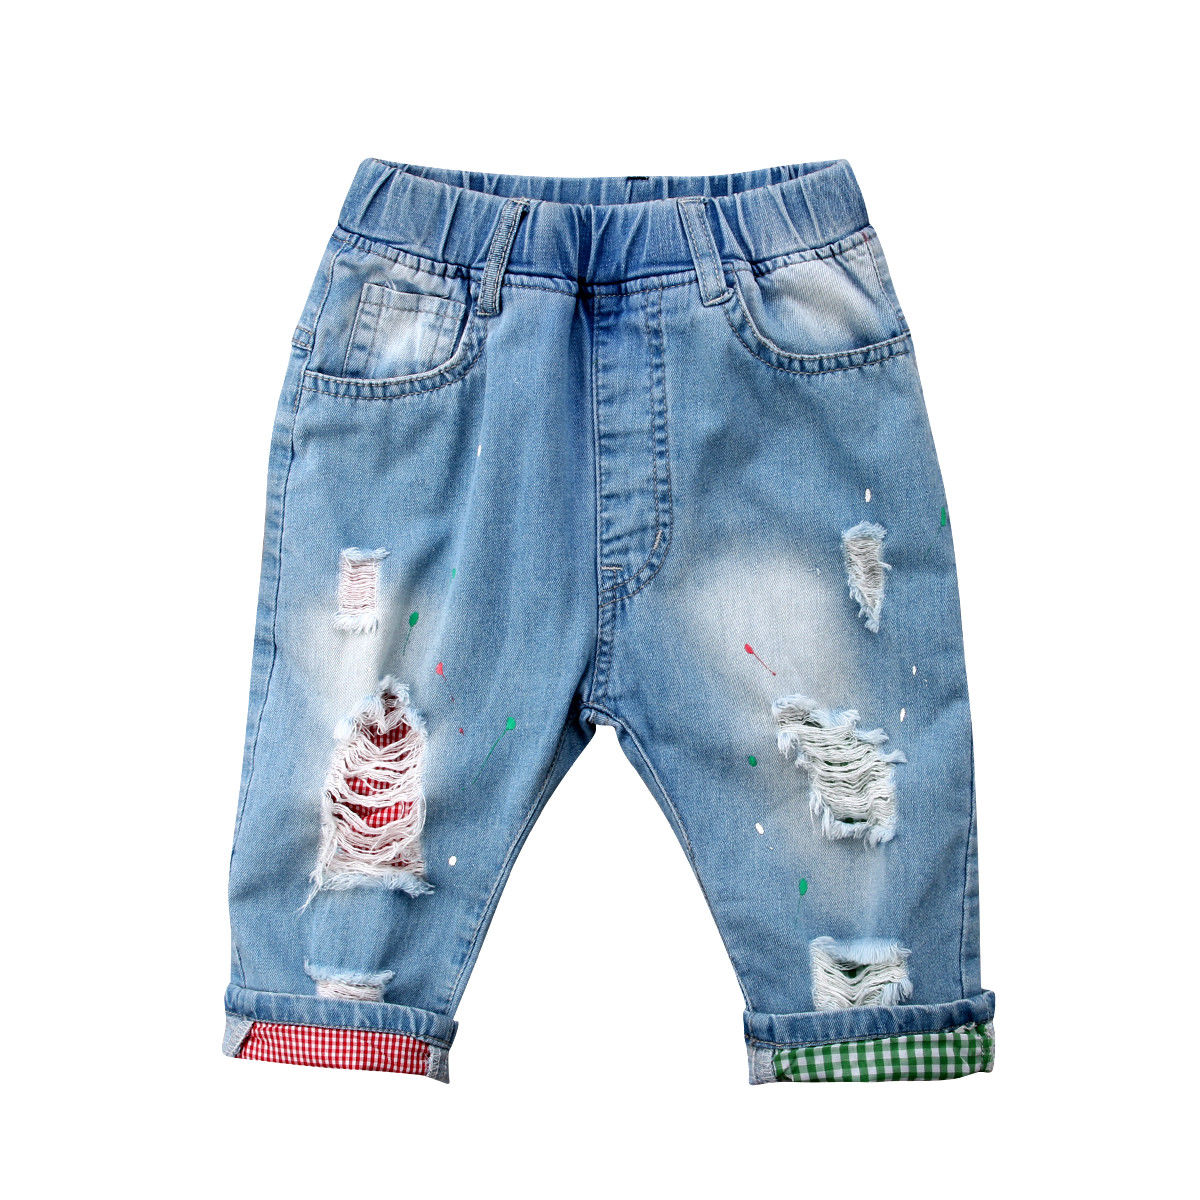 Summer Kids Boy Ripped Jeans Destroyed Frayed Knee-length Denim Shorts Pants USA